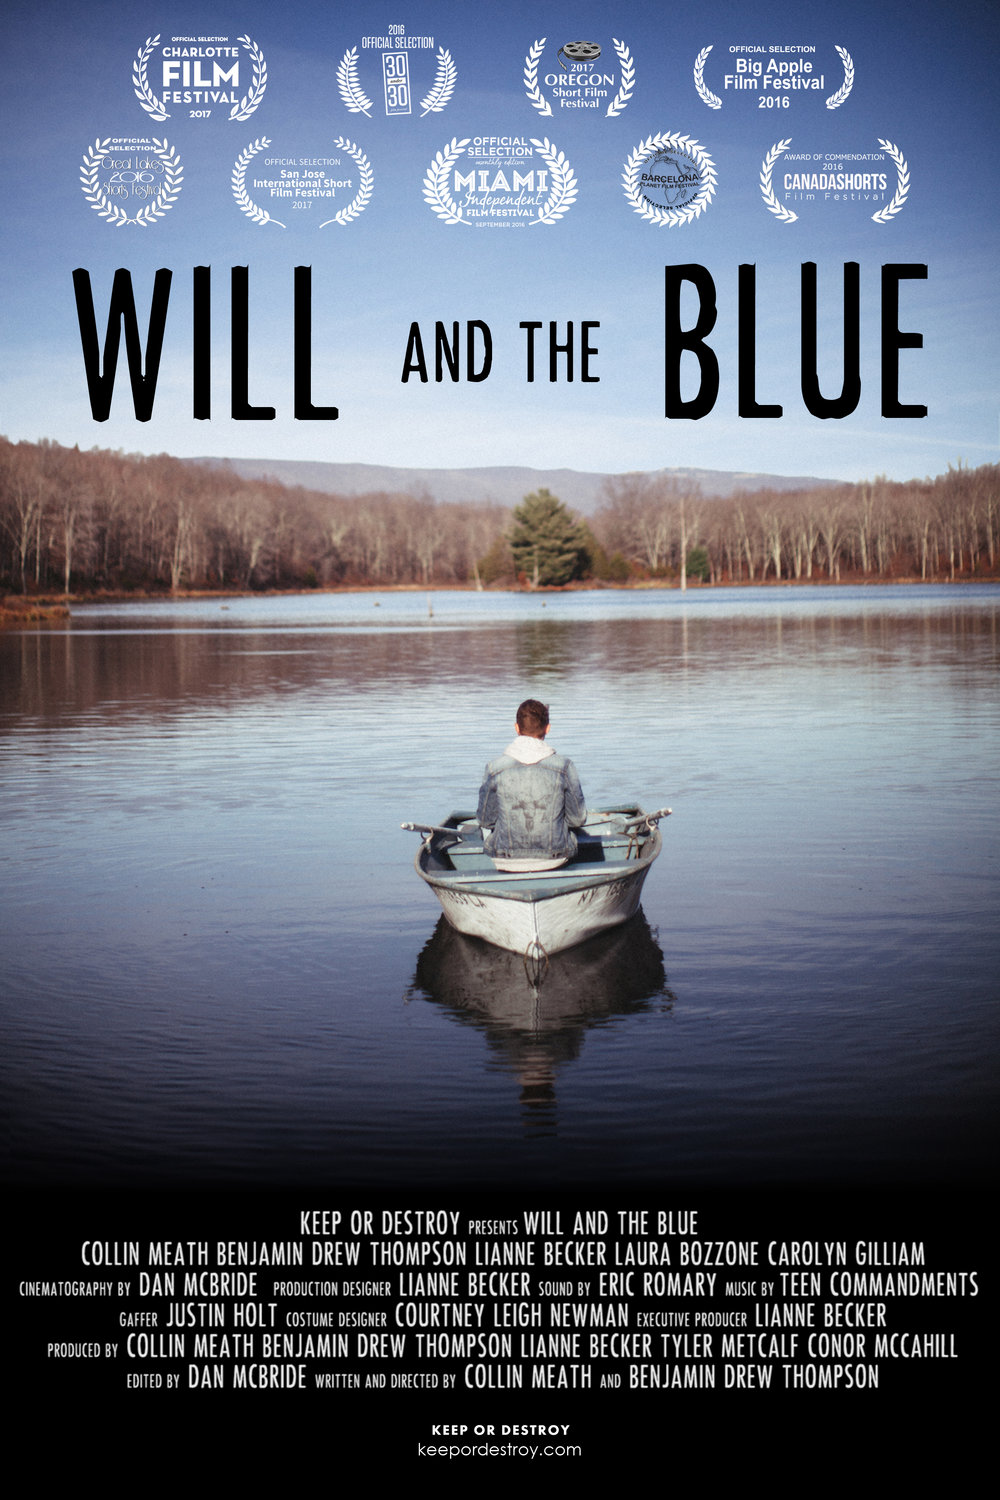 Will and the Blue - Will and the Blue is a surreal dark comedy about the universal struggle of accepting change in our lives. Shot in Brooklyn during the fall and winter of 2015, Will and the Blue is an award winning short film and has been featured at over eleven film festivals including Big Apple, 30Under30, Charlotte Film Festival and San Jose International Short Film Festival.